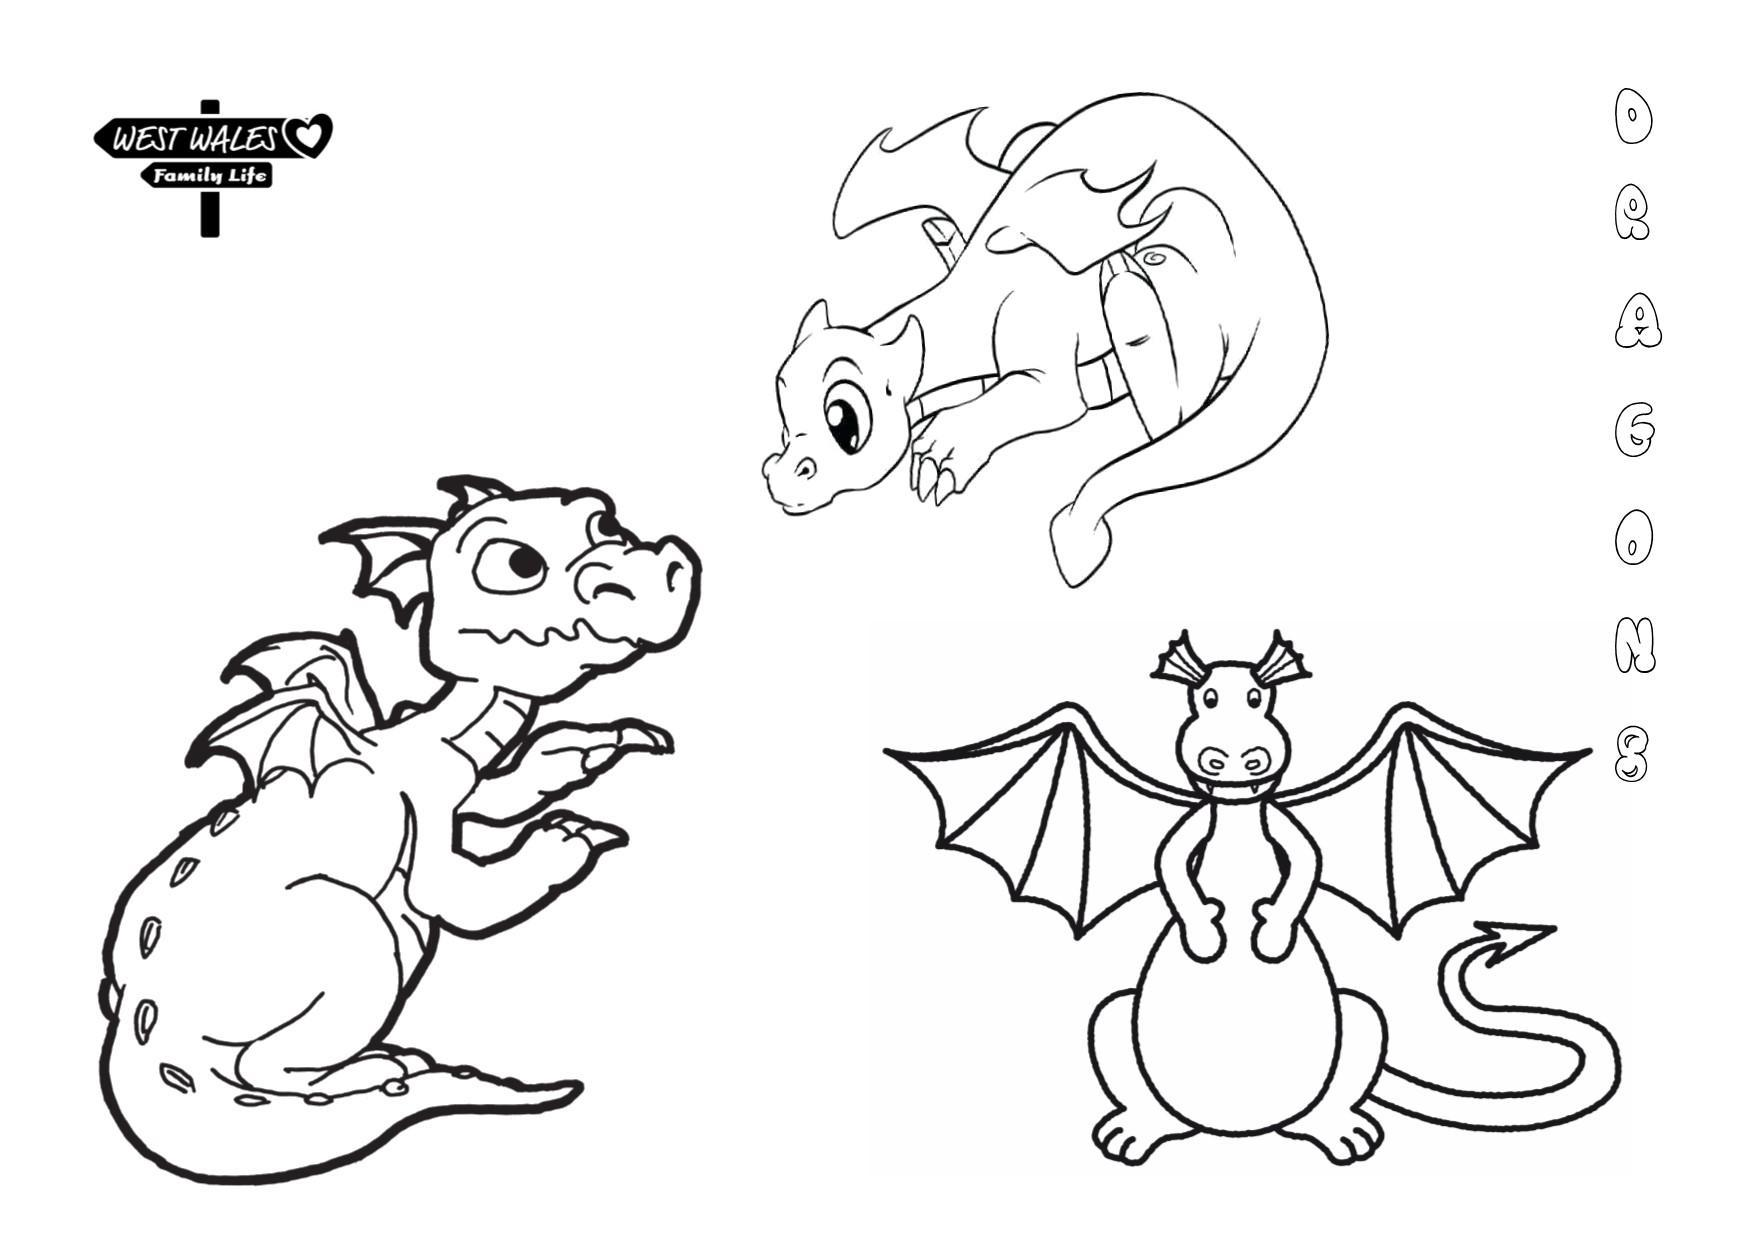 West Wales Family Life Printable St Davids Day Colouring Sheets for the Kids Page 2